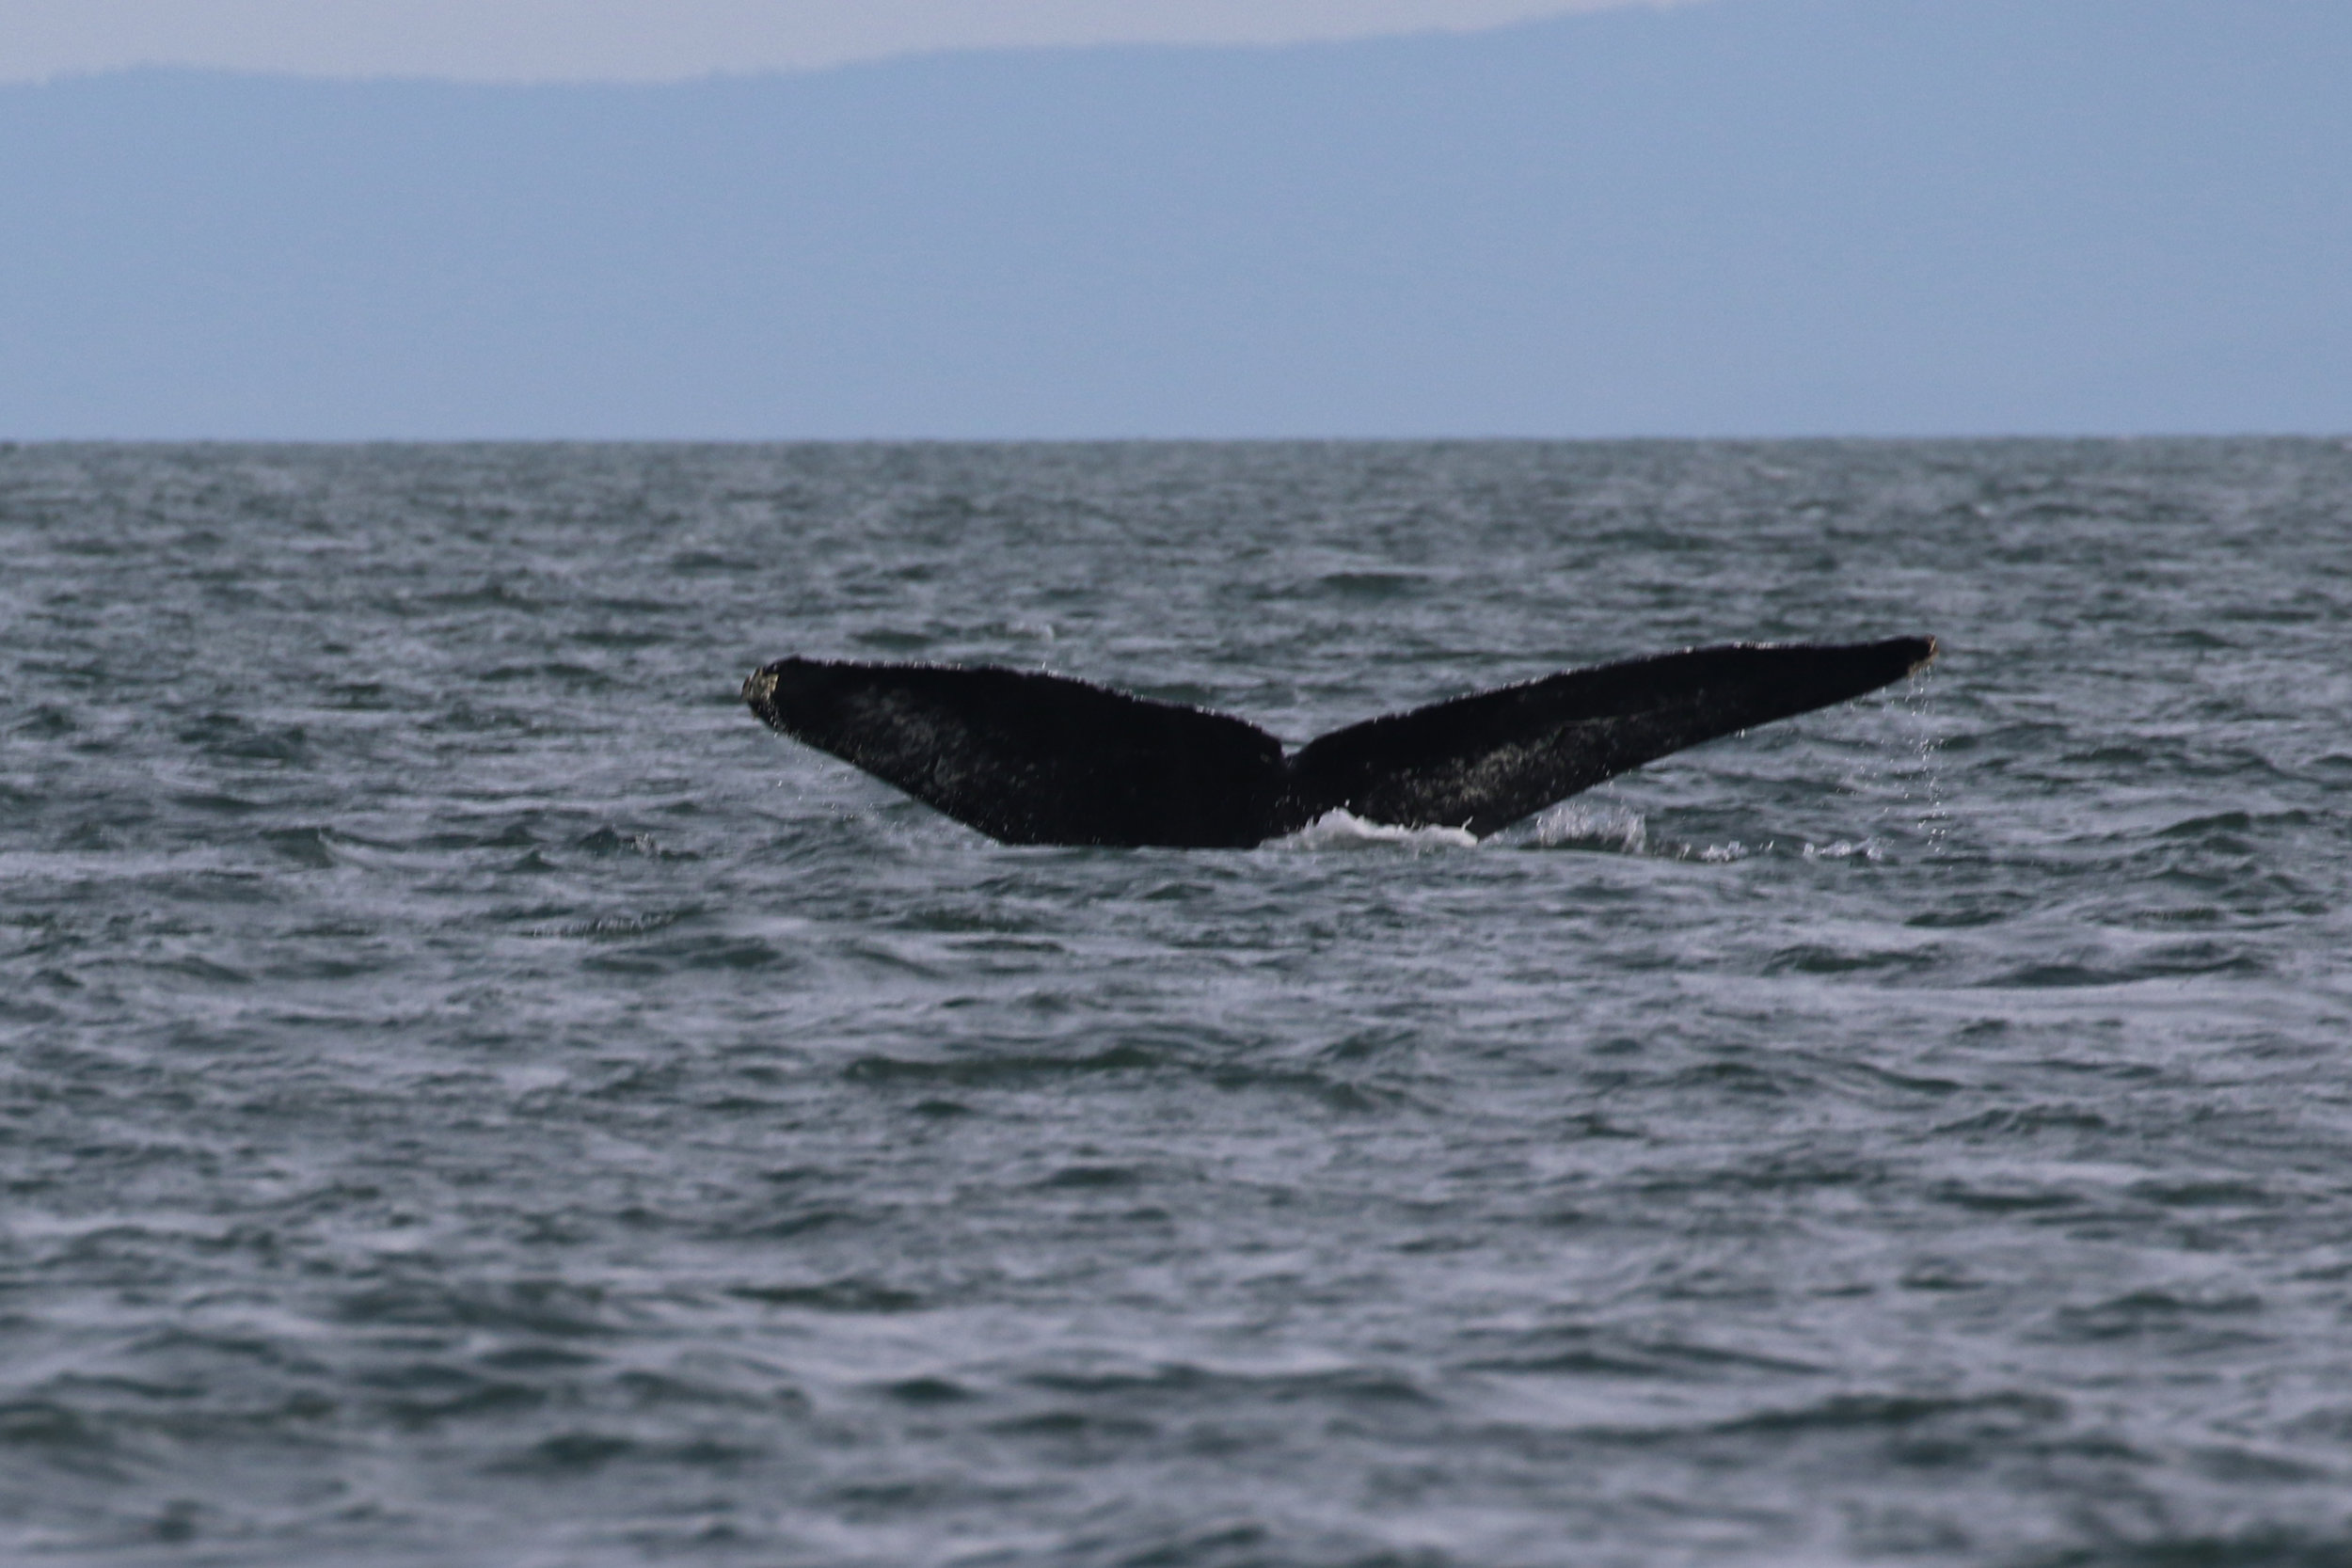 Fader the humpback whale! Photo by Ryan Uslu.